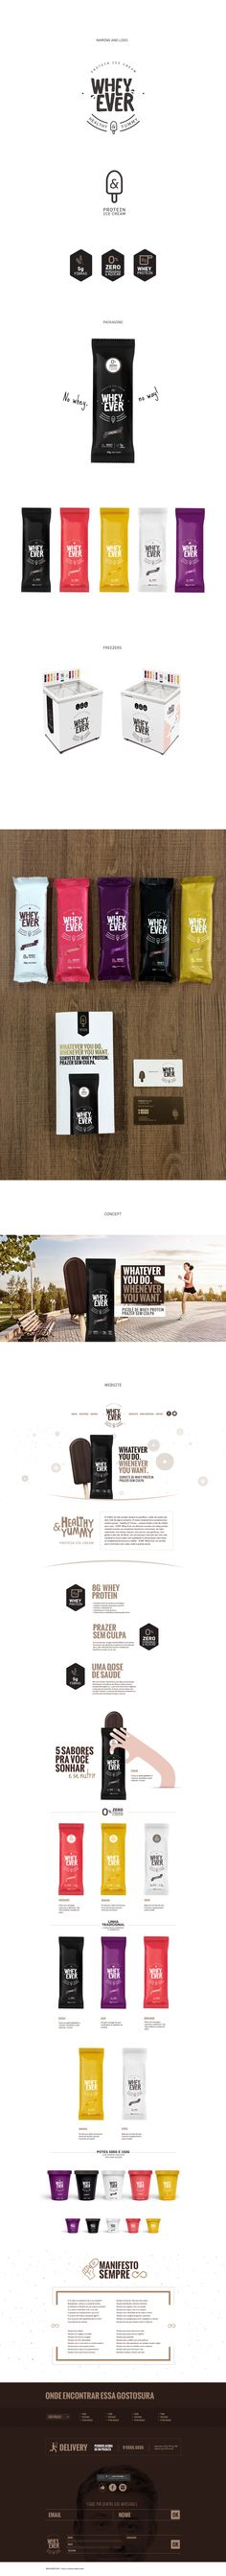 WHEY EVER PROTEIN ICE CREAM on Behance